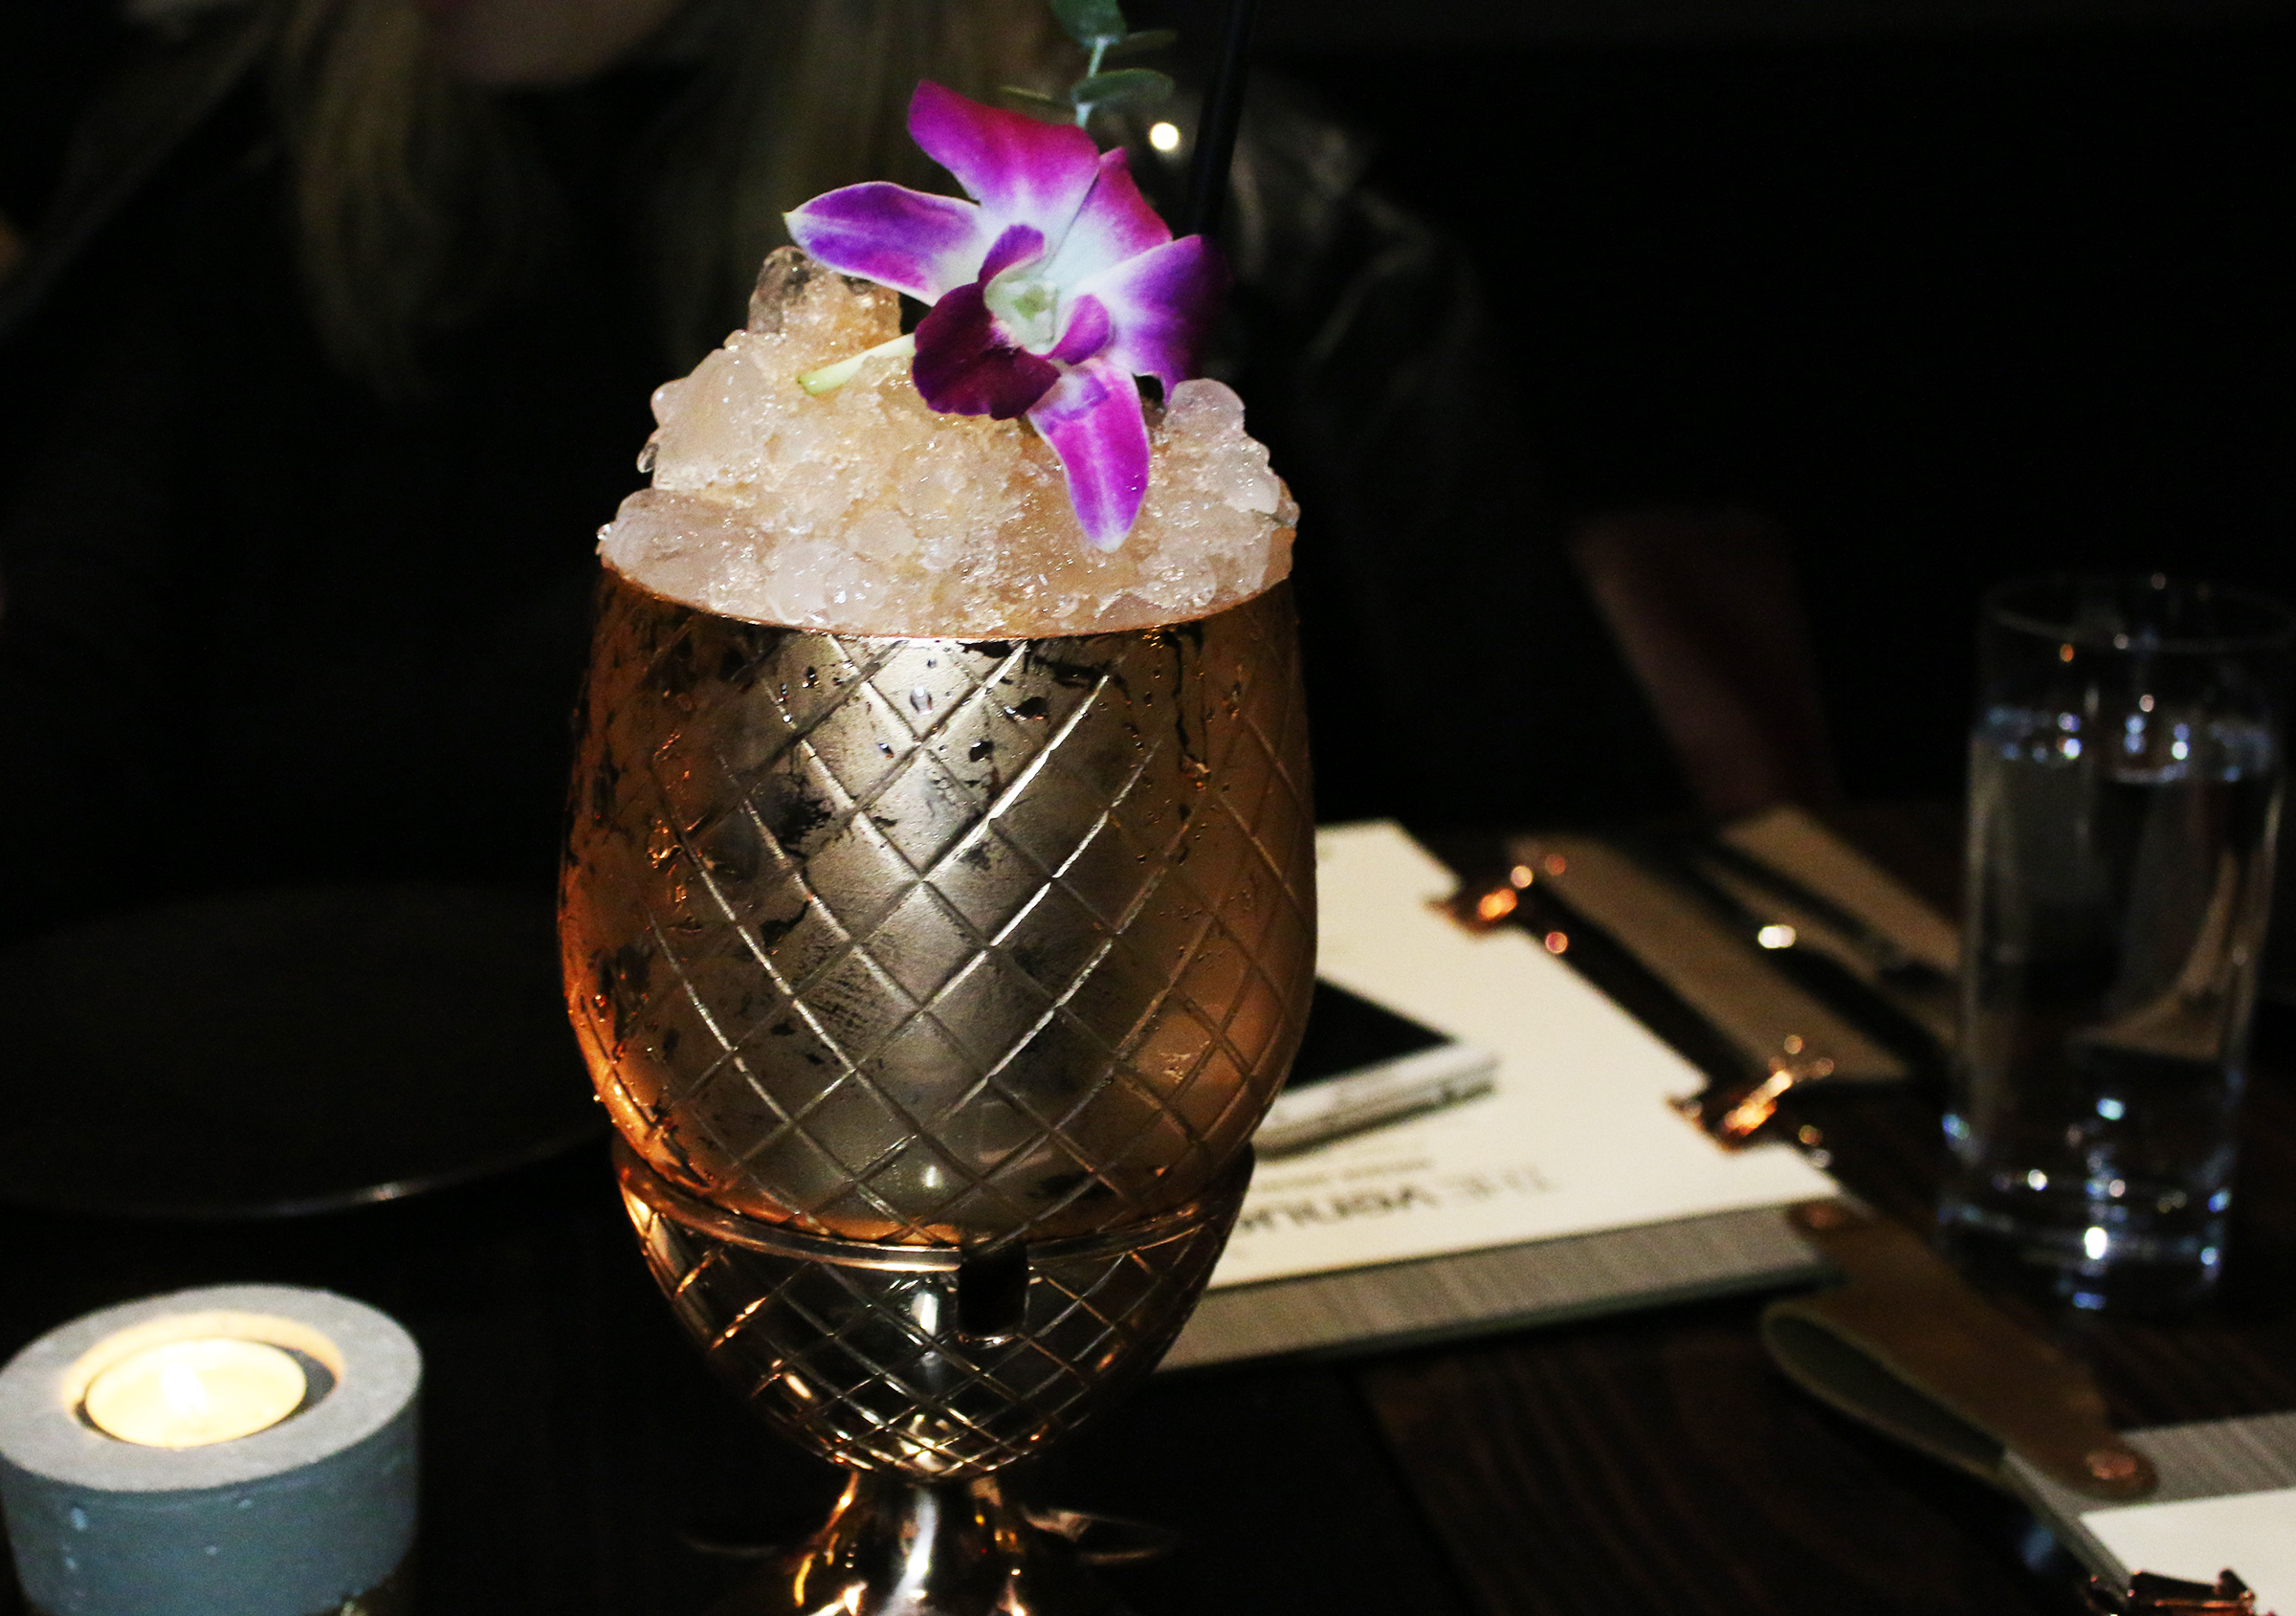 The Seana: Absolut Elyx Vodka, Yellow Chartreuse, Eucalyptus, Lemon, Passion Fruit, Angostura Bitters